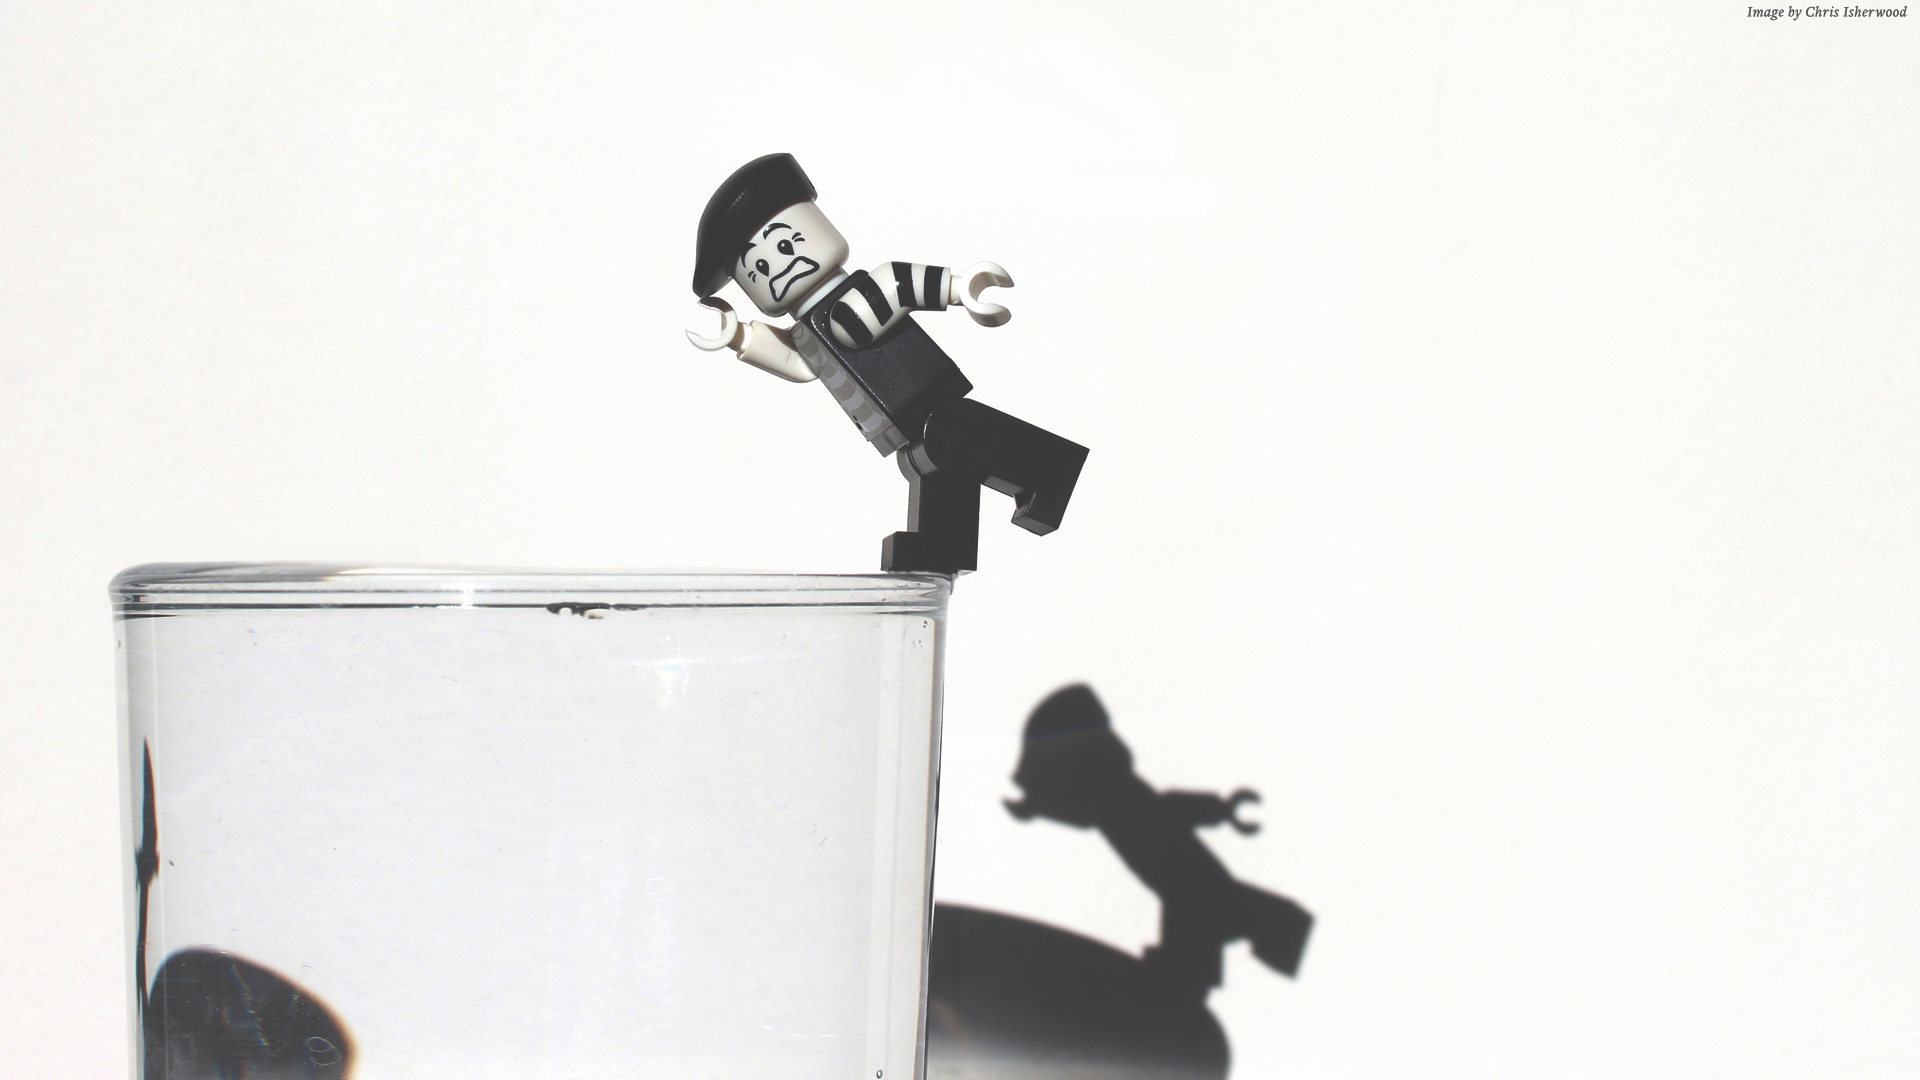 Lego mime falling into a glass of water